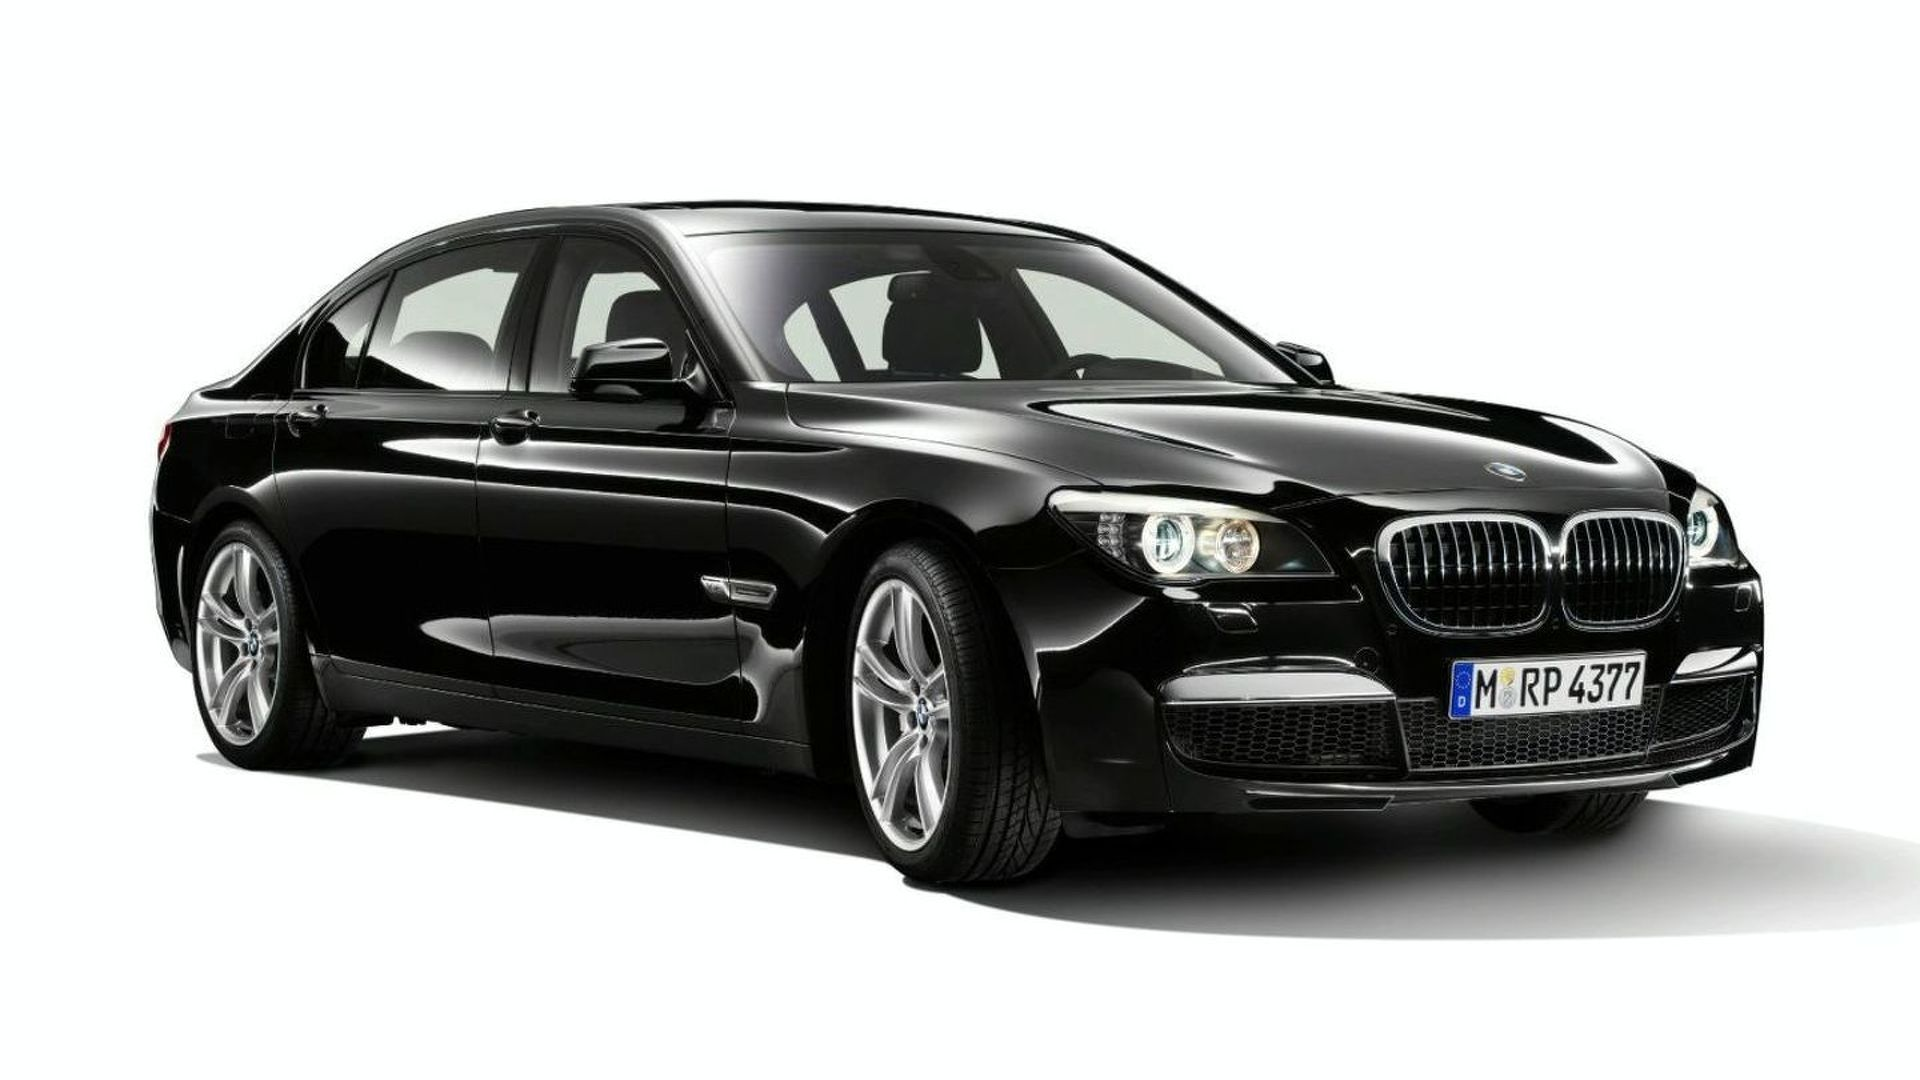 2011 BMW 740i / 740Li Announced for US - First 6-cylinder since 1992